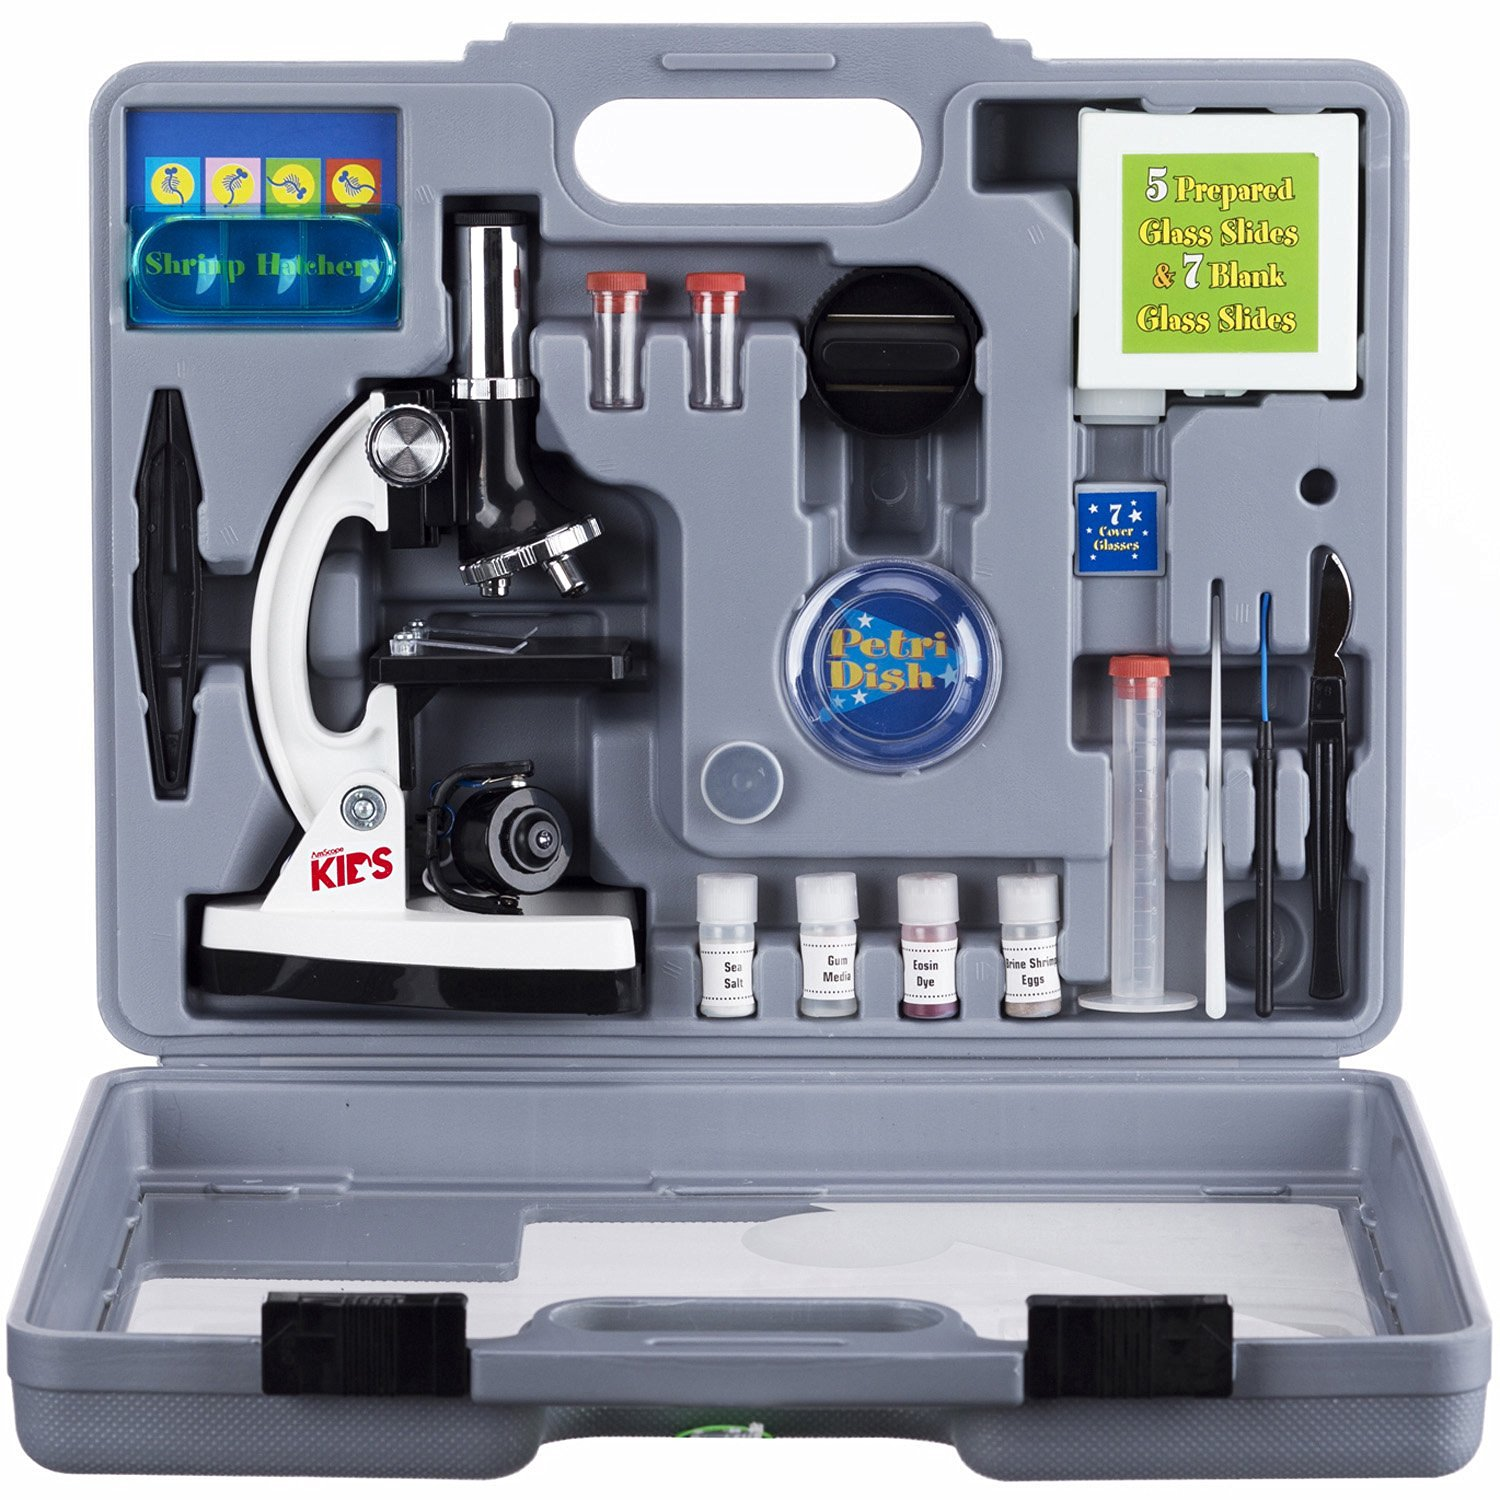 AMSCOPE-KIDS M30-ABS-KT2-W Beginner Microscope Kit, LED and Mirror Illumination, 300X, 600x, and 1200x Magnification, Includes 5